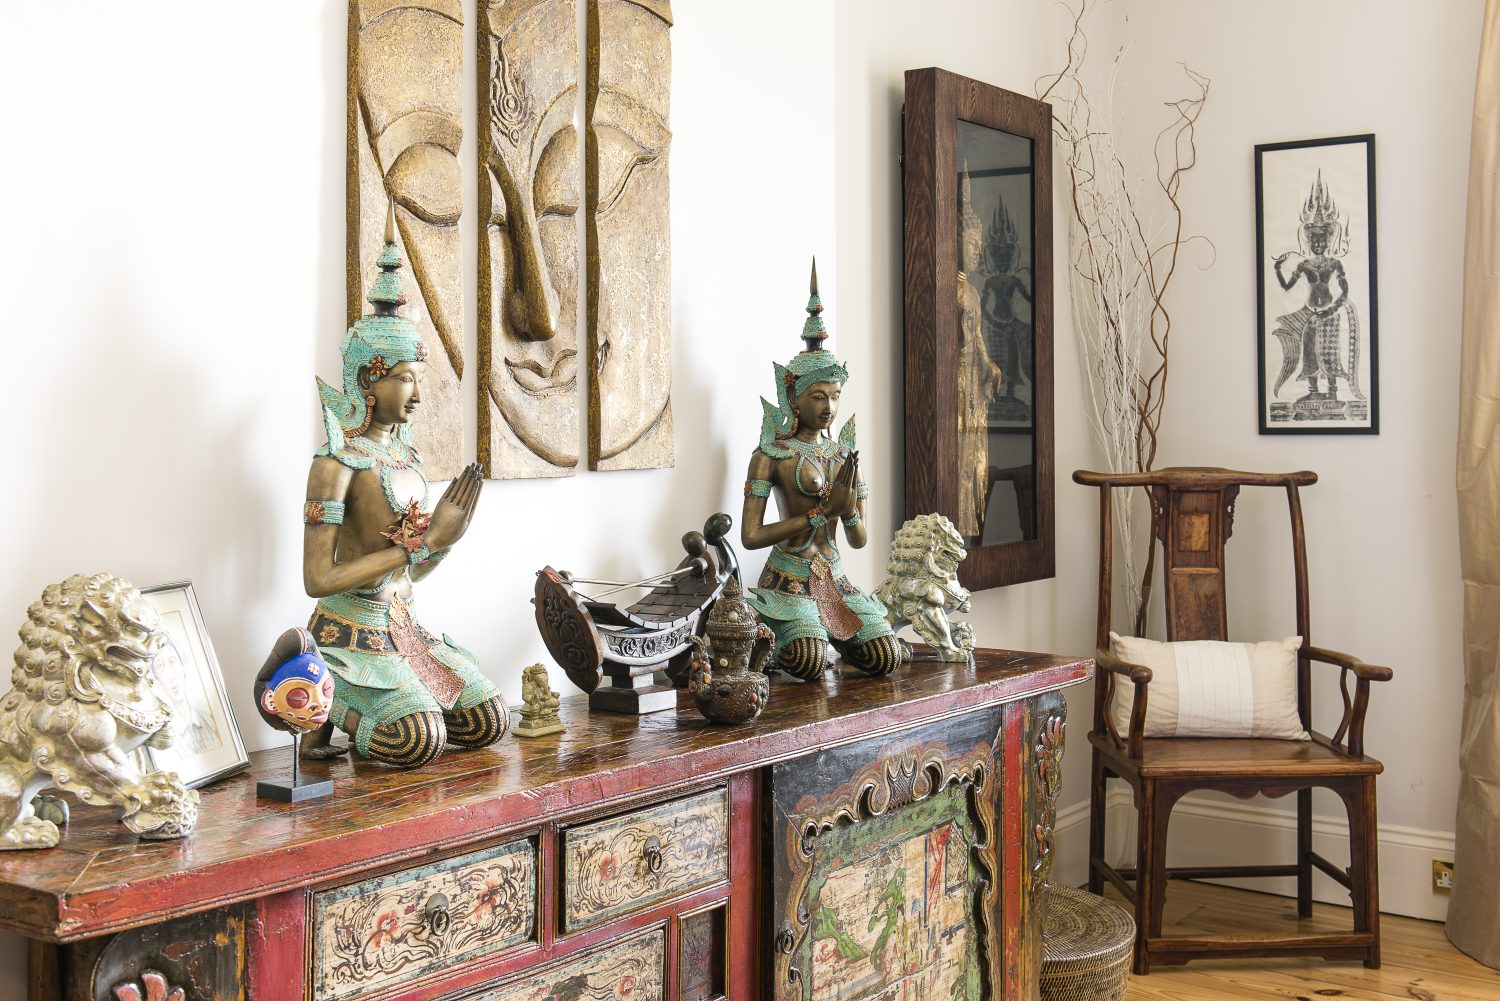 Chris and Lillie found the antique Mongolian cabinet at Yi Ju in Tunbridge Wells, along with the Chinese chair. The brass statues were found in Bangkok